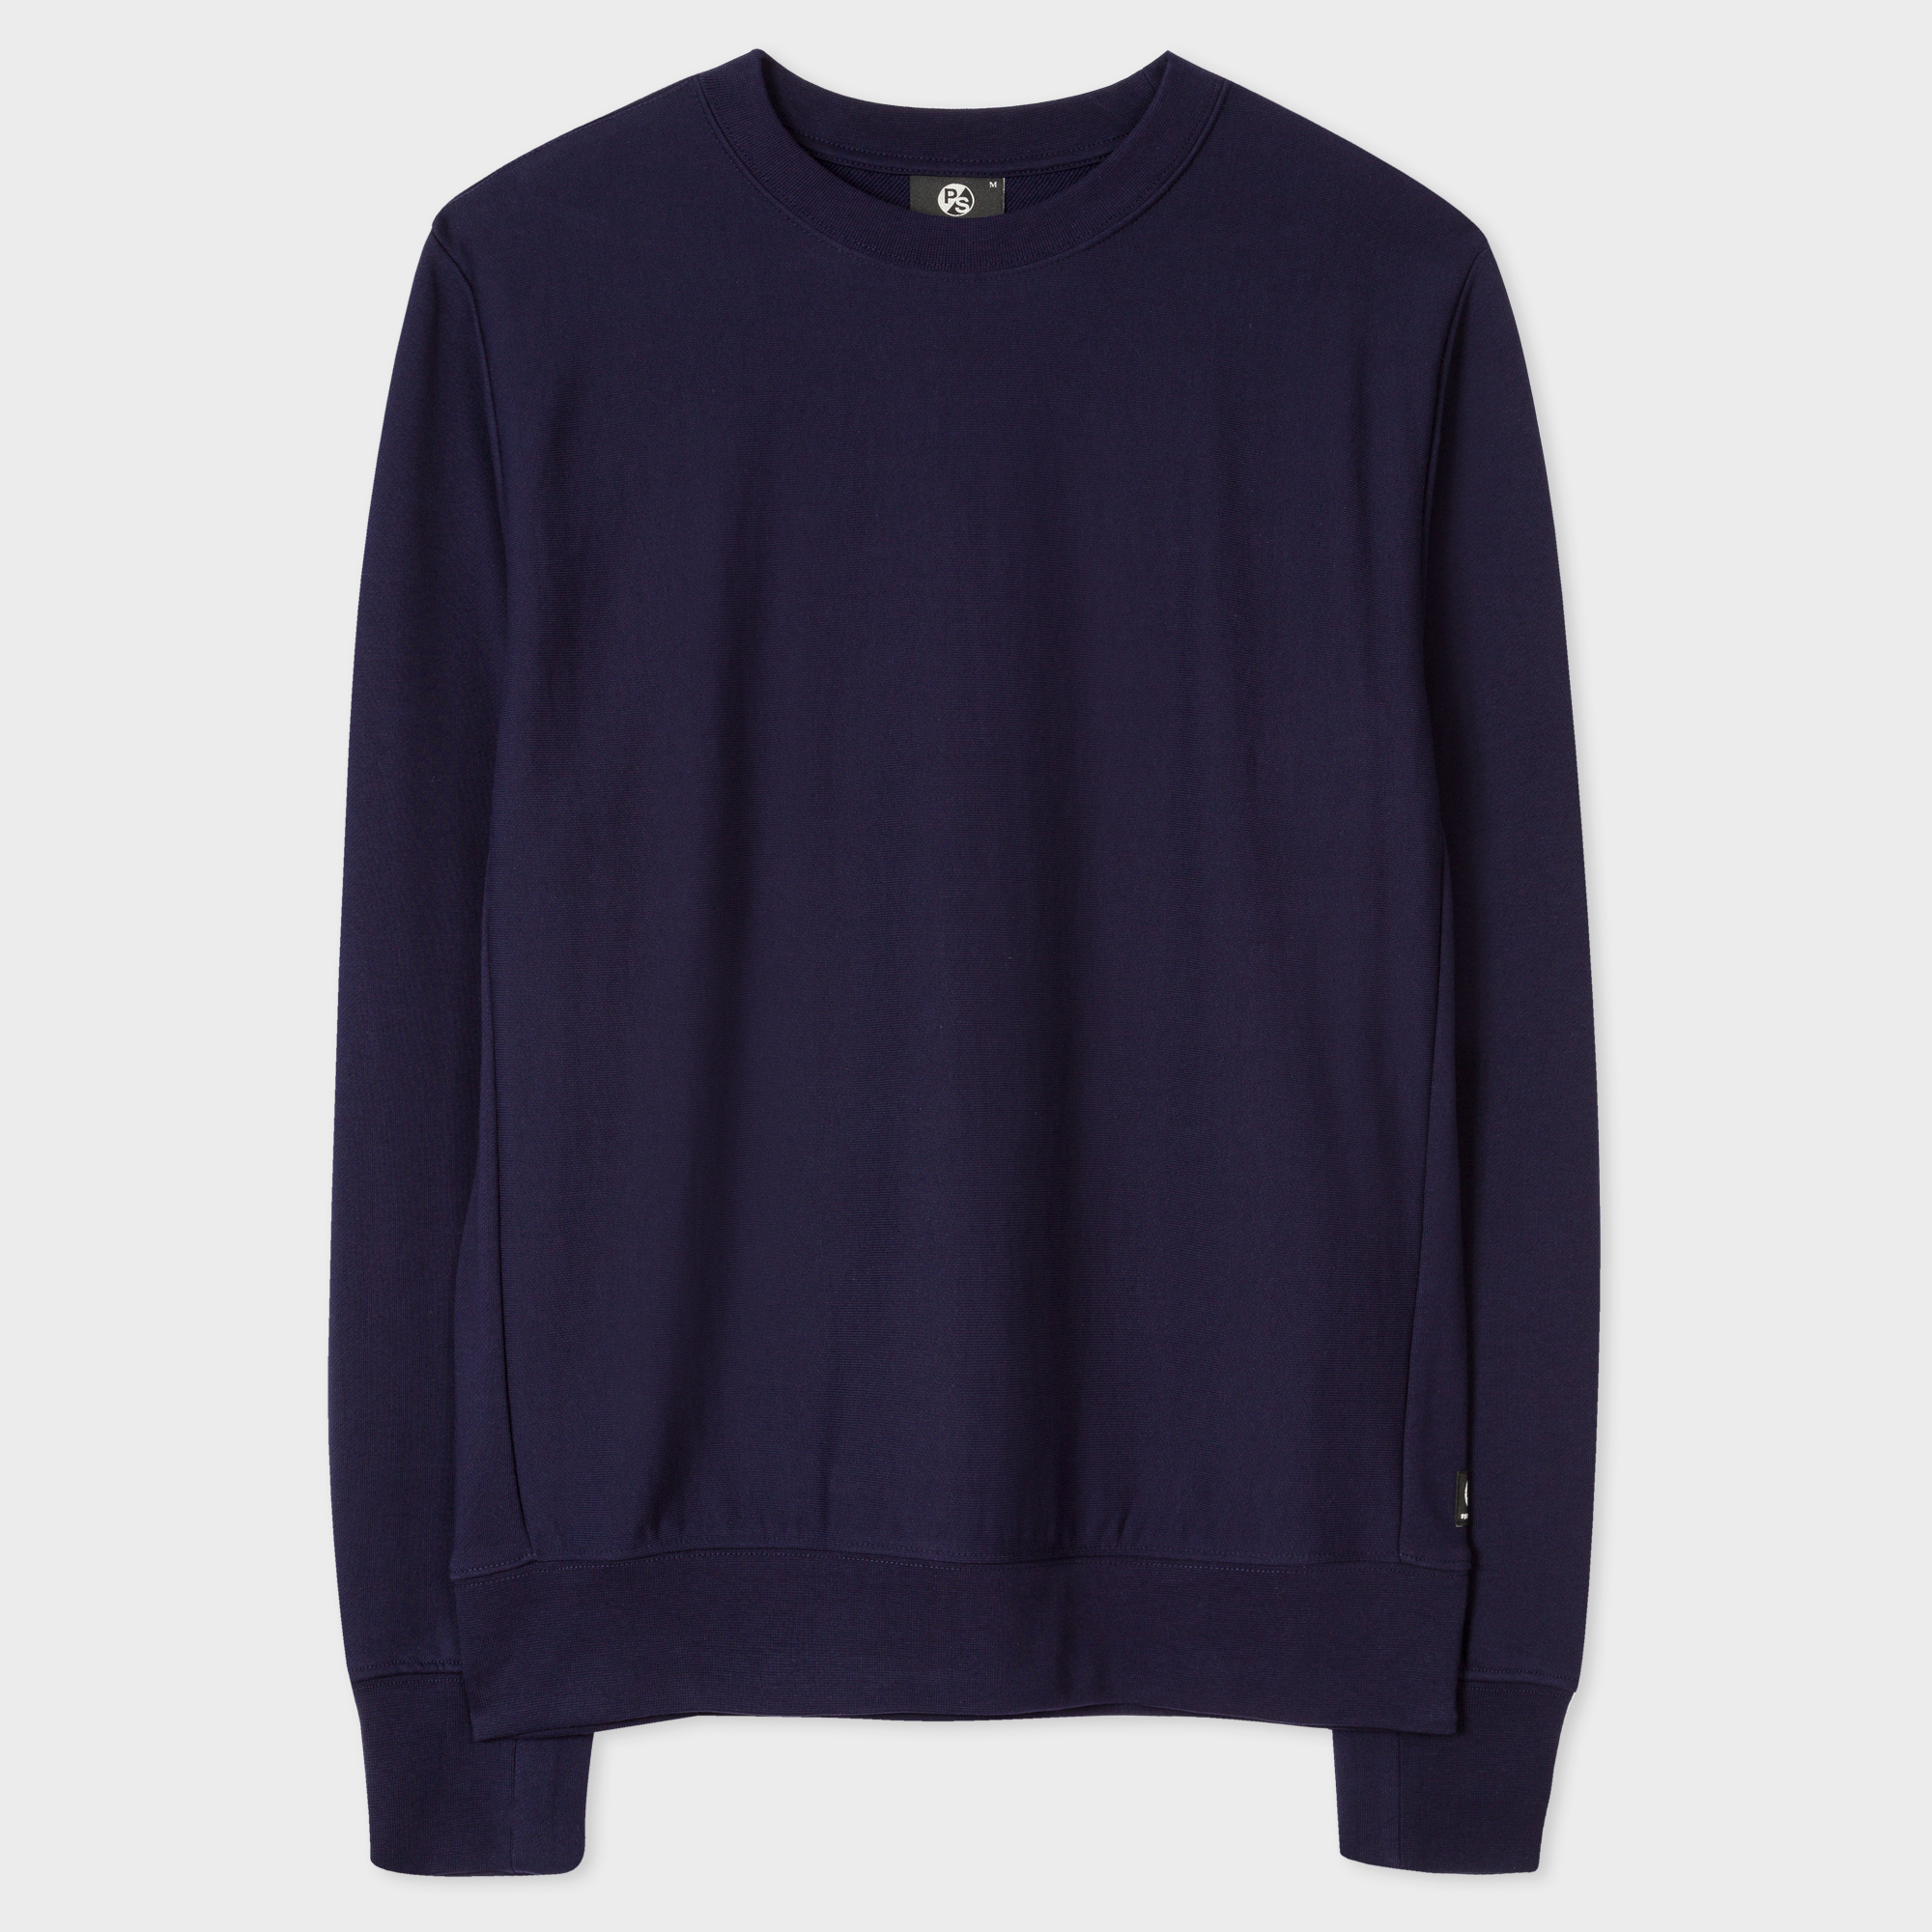 Paul Smith Men's Navy Organic-Cotton Sweatshirt